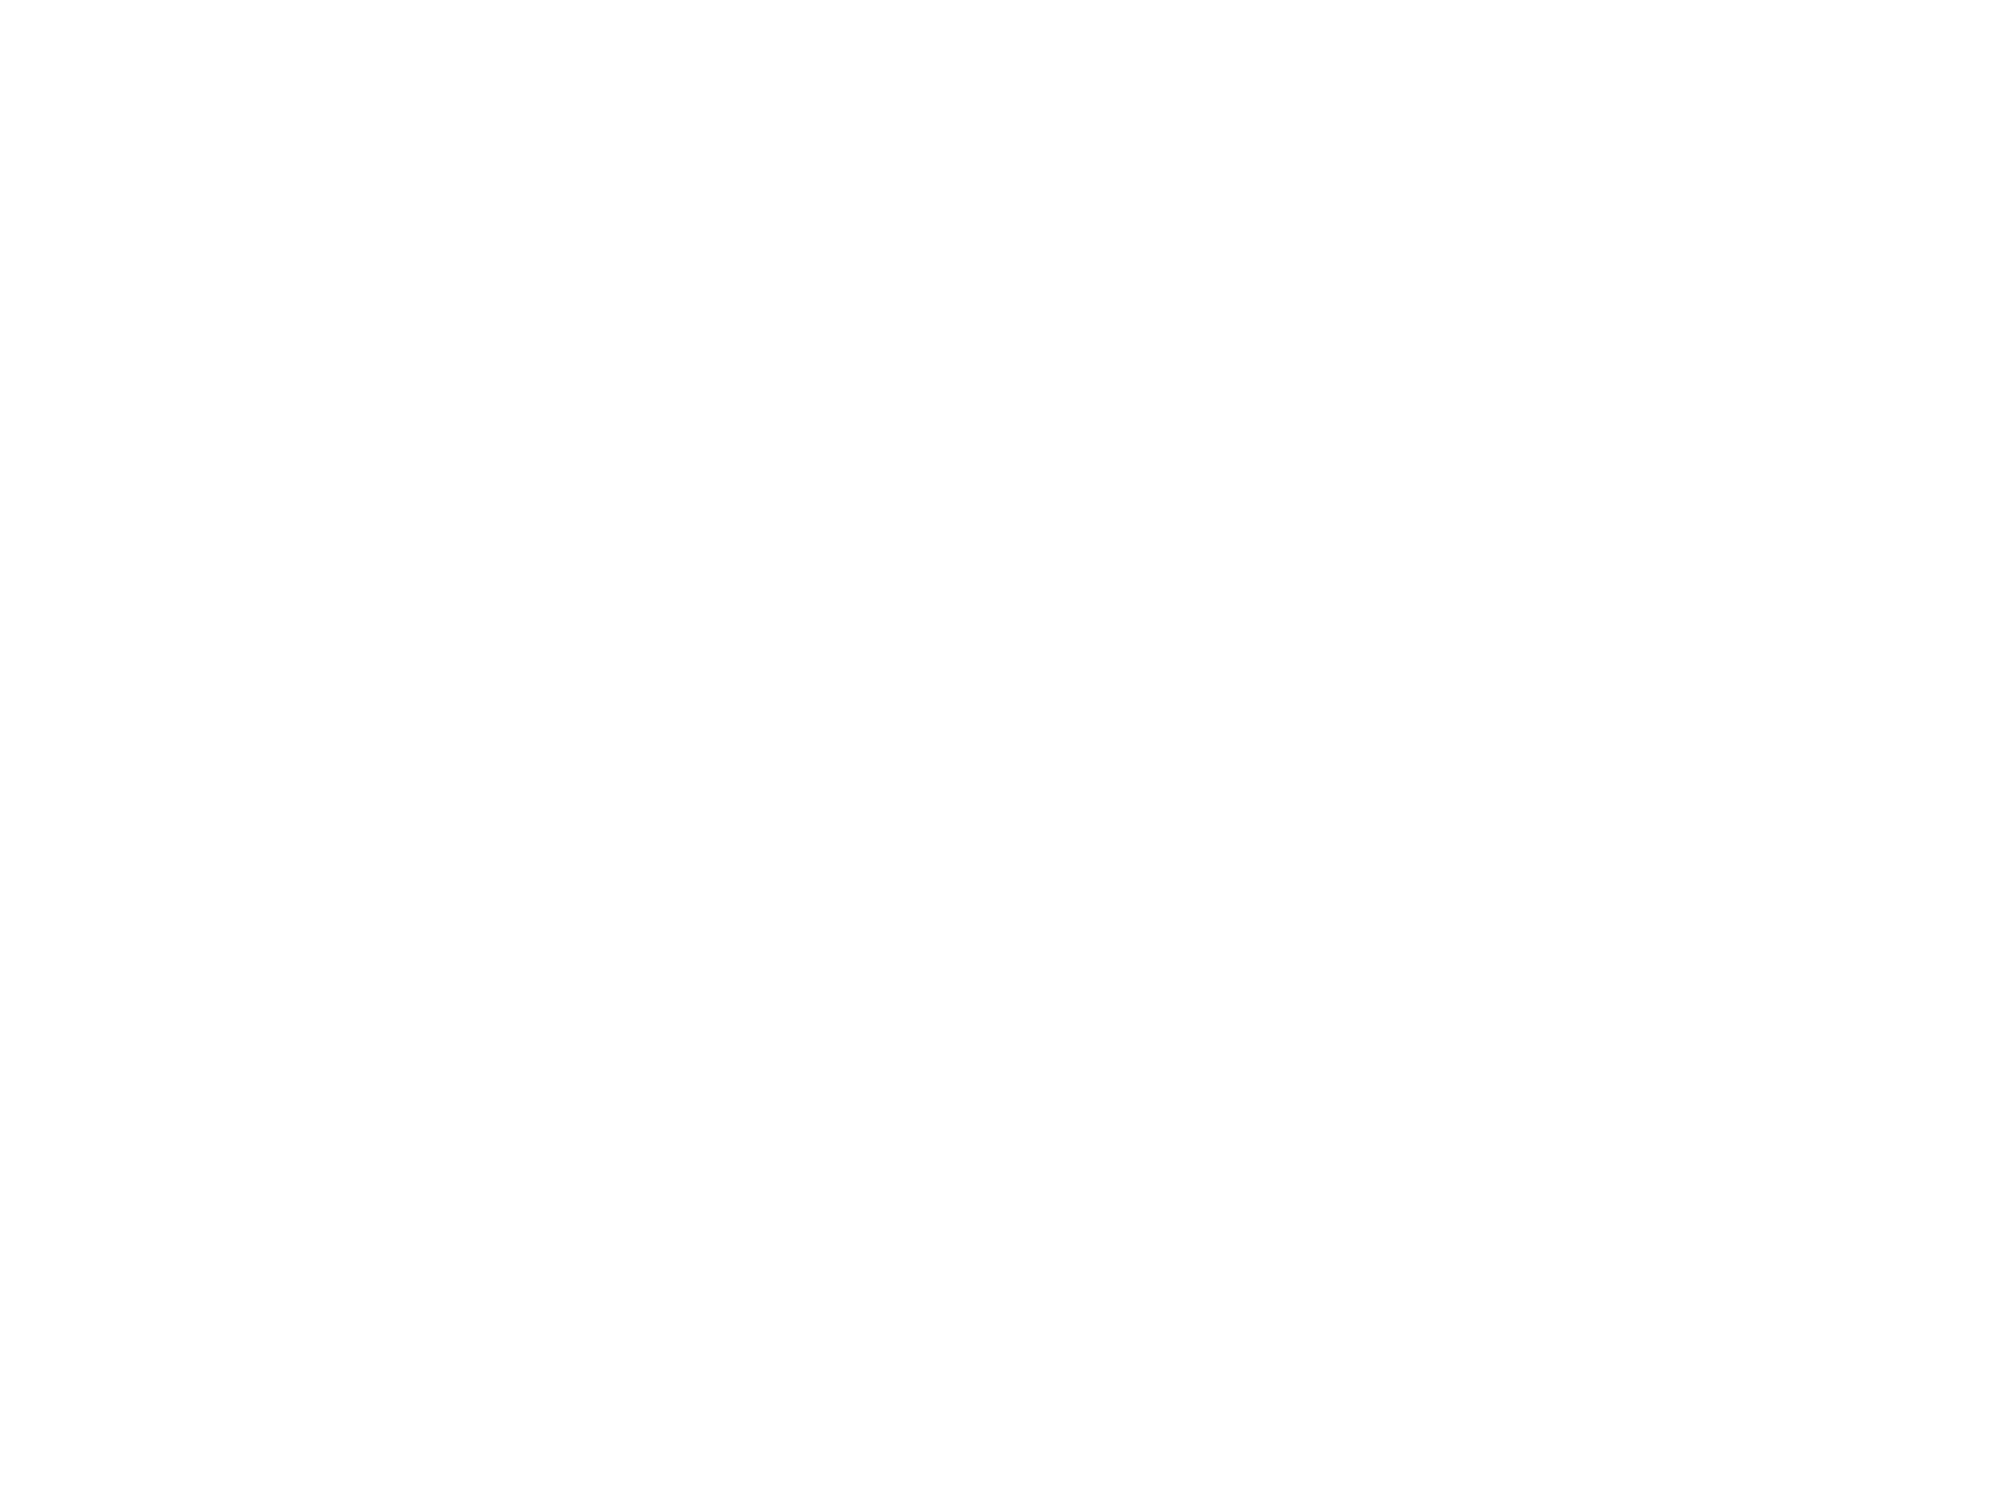 Route 40 Brewing & Distilling